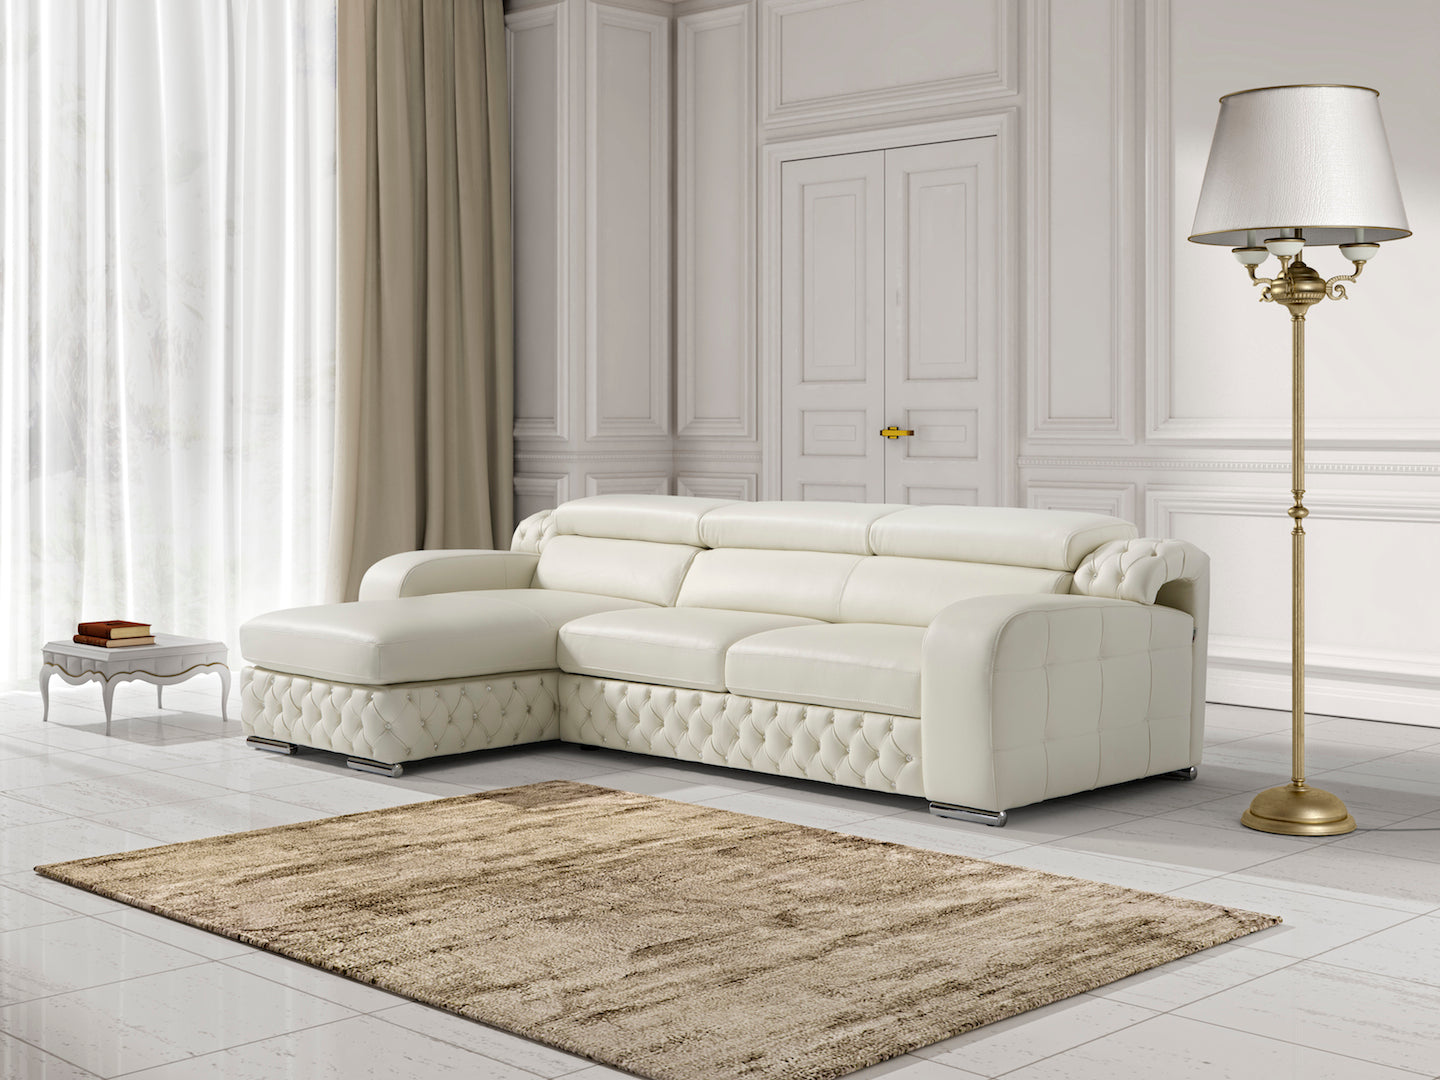 Italian Leather Sofas in Doncaster